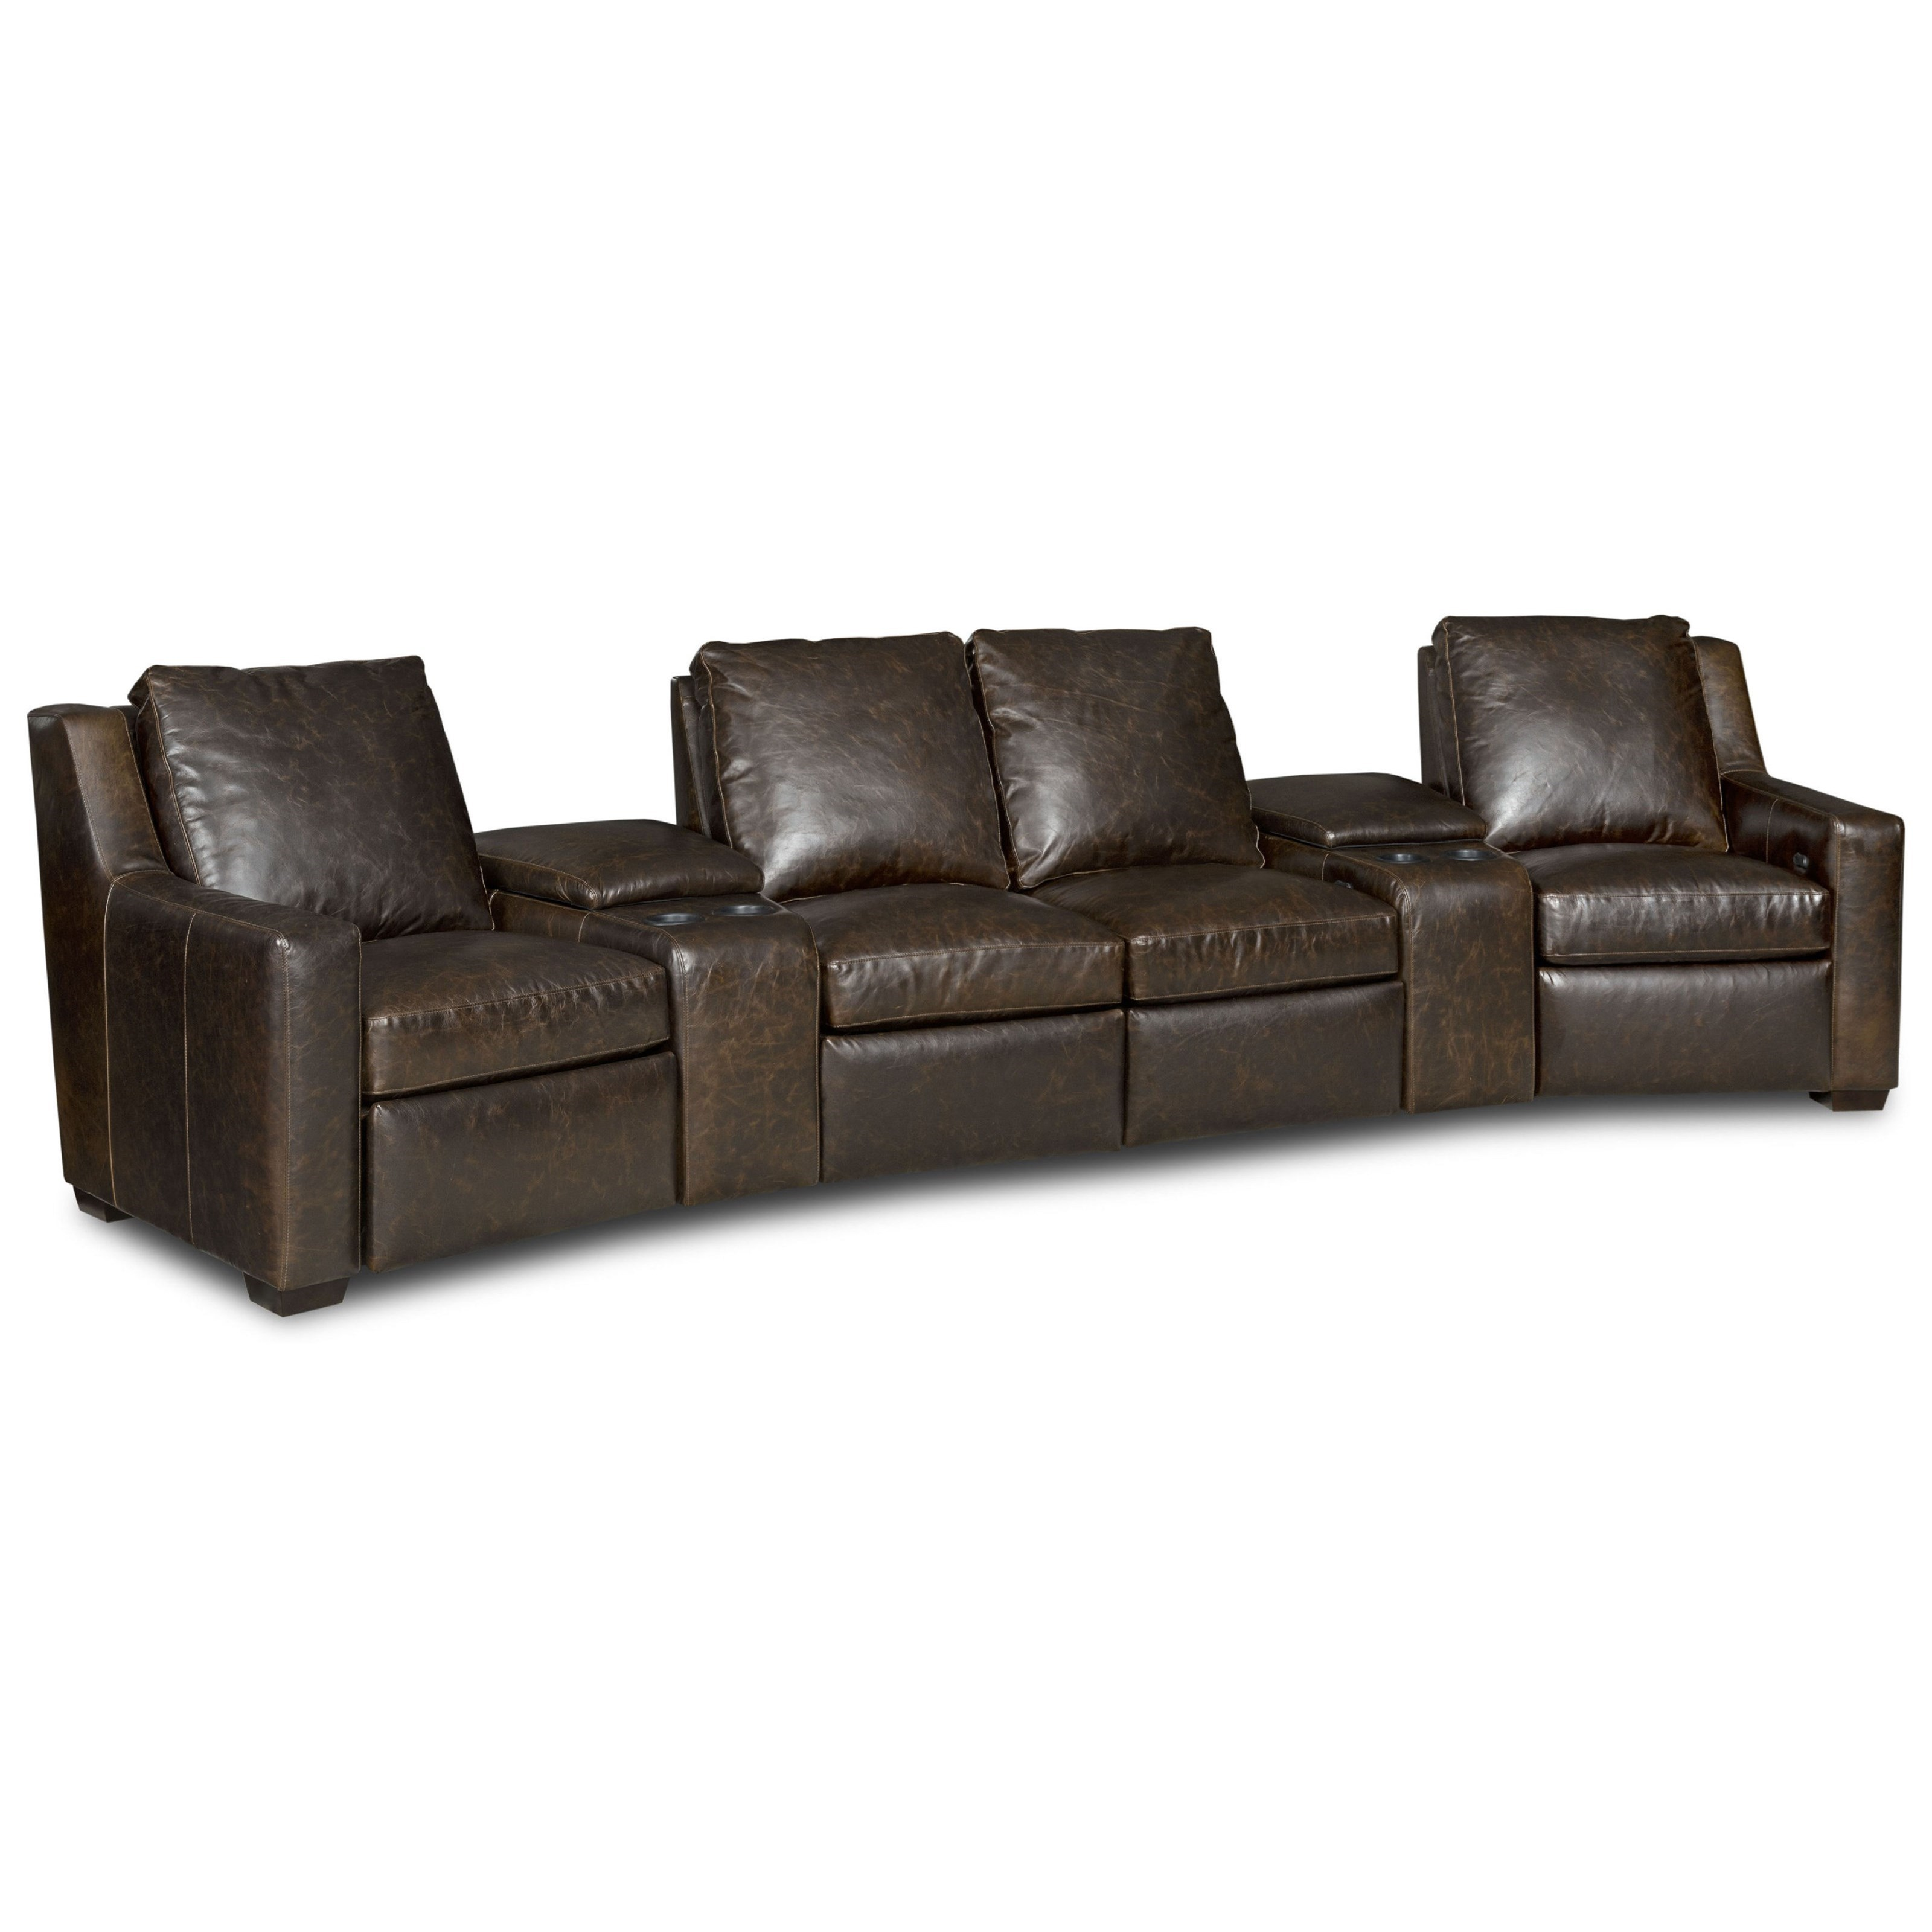 Bradington Young Connery3 Pc Power Reclining Sectional Sofa  Recliner With Cup Holder And Storage R44